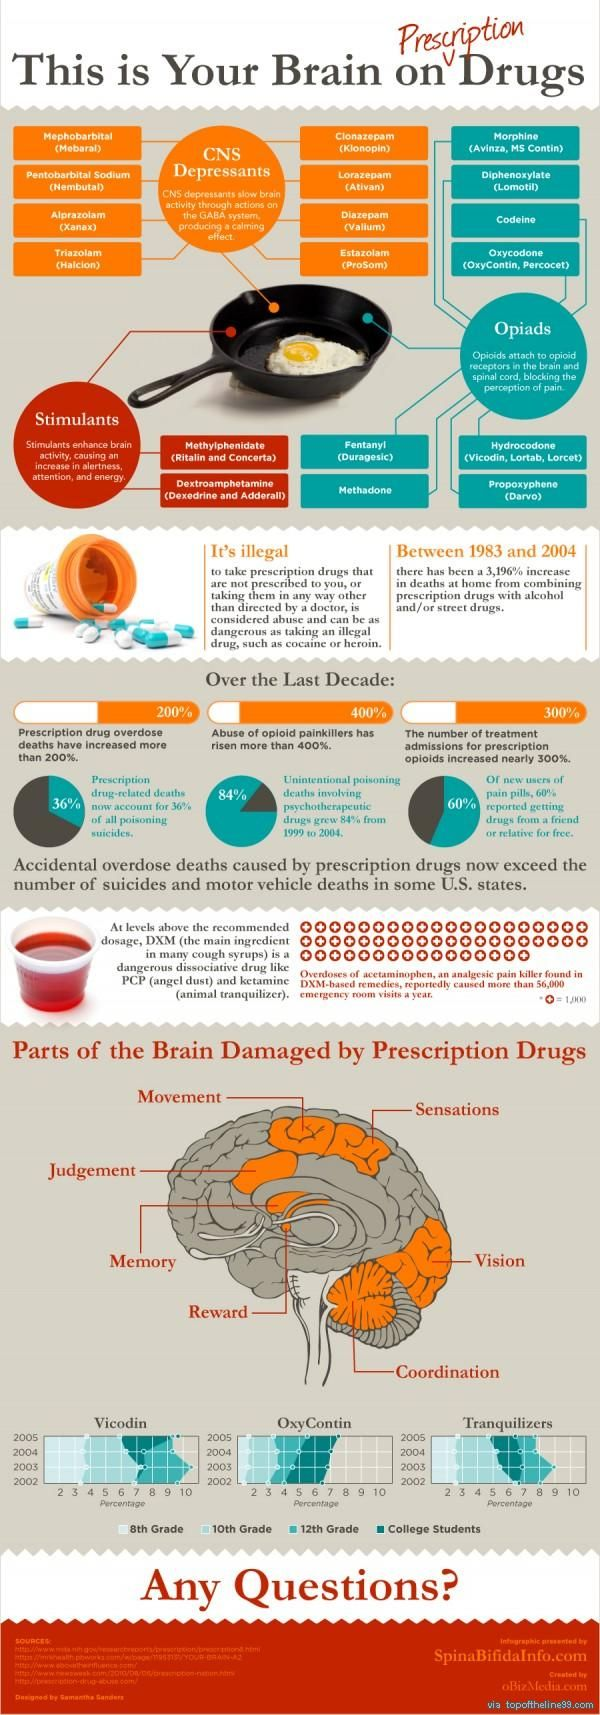 20 best the brain images on pinterest the brain mental health and this is your brain on drugs via topoftheline99 ccuart